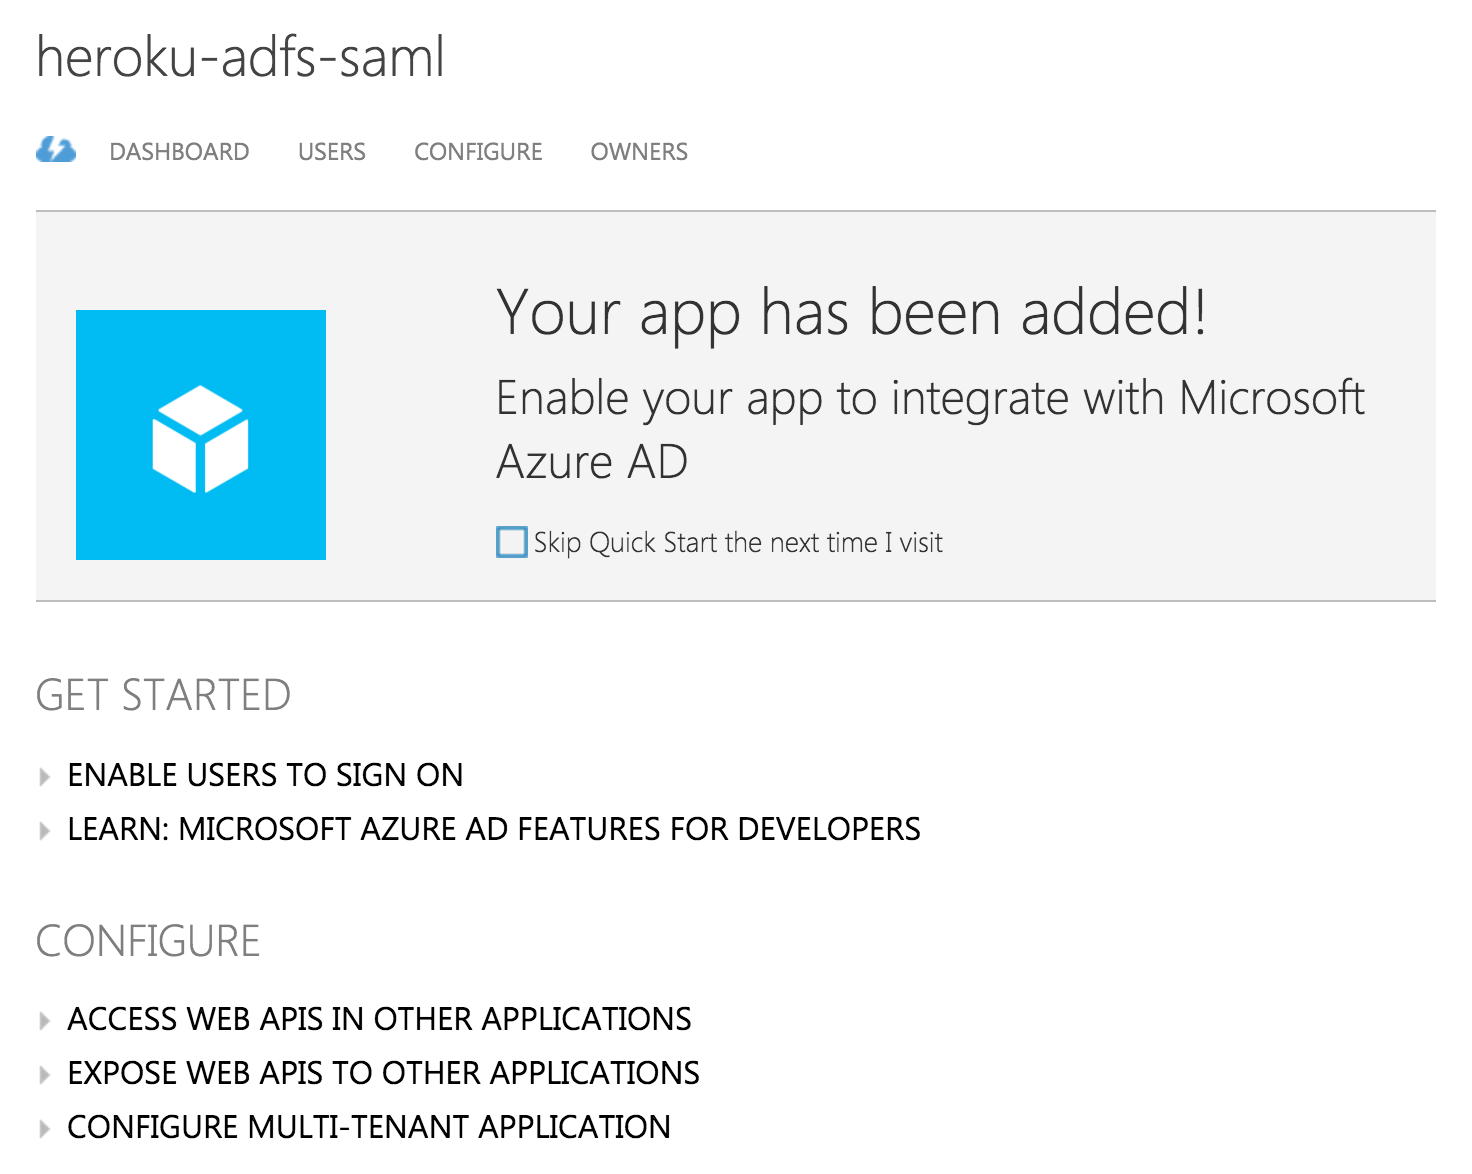 Azure App successfully added